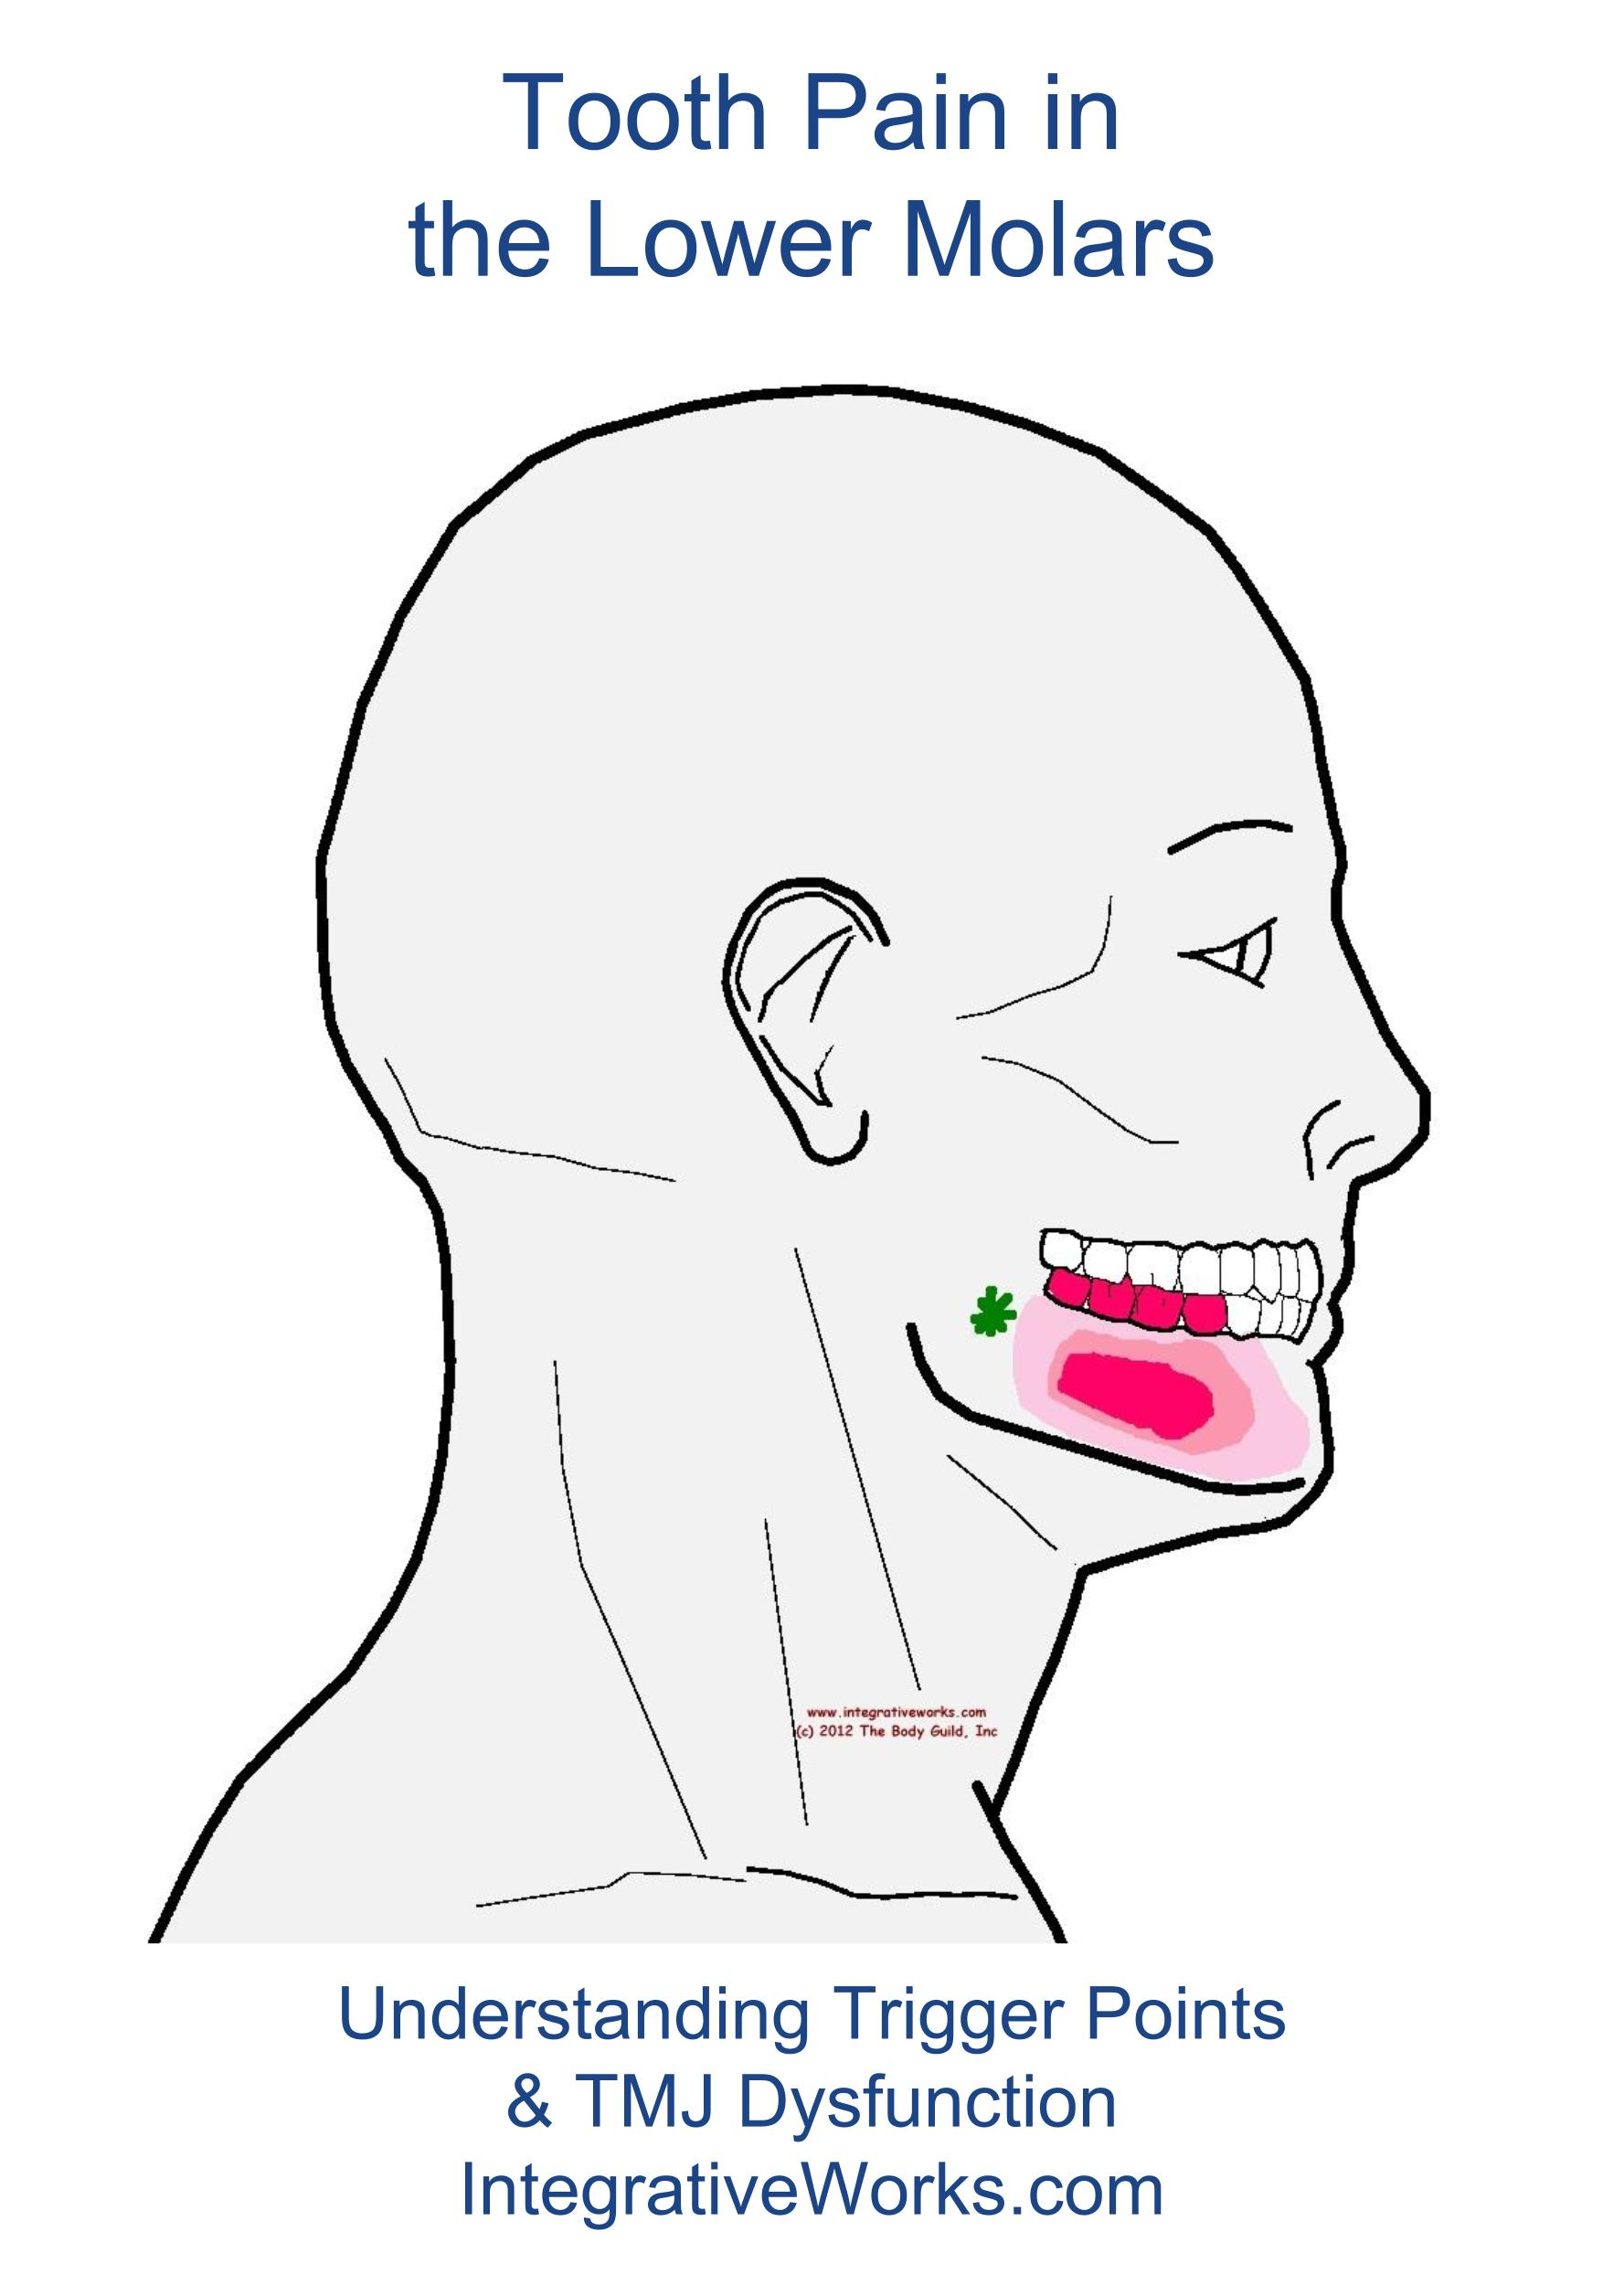 Trigger Points, Pain of Lower Teeth, Jaw | Integrative Works